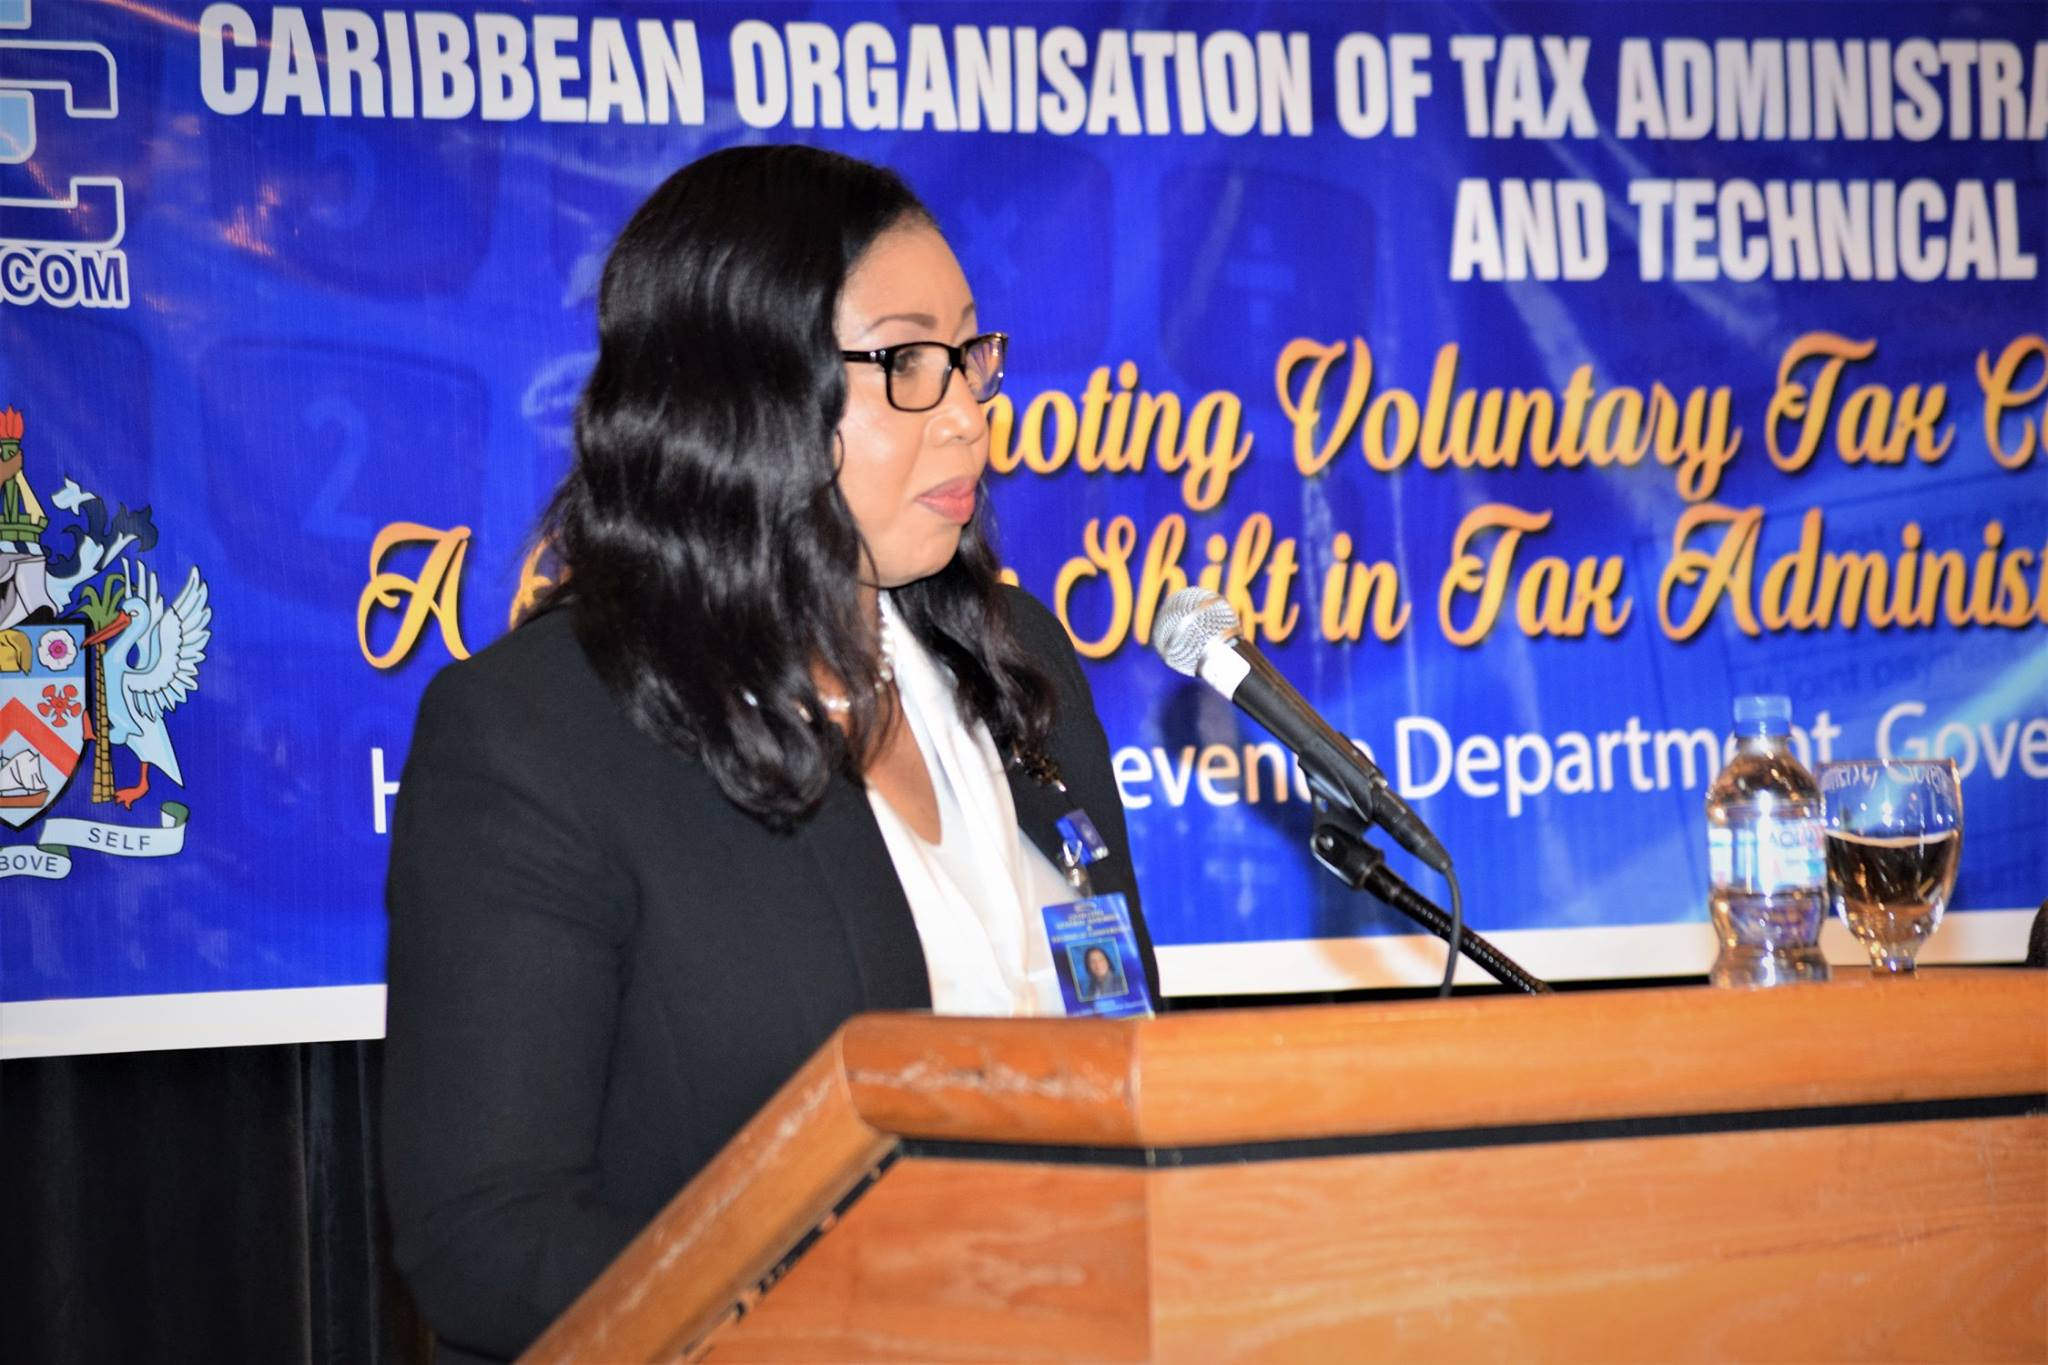 Ms. Evelyn Wayne, Director, Economic Policy and Development, CARICOM Secretariat  (Photo via St. Kitts and Nevis Information Service)